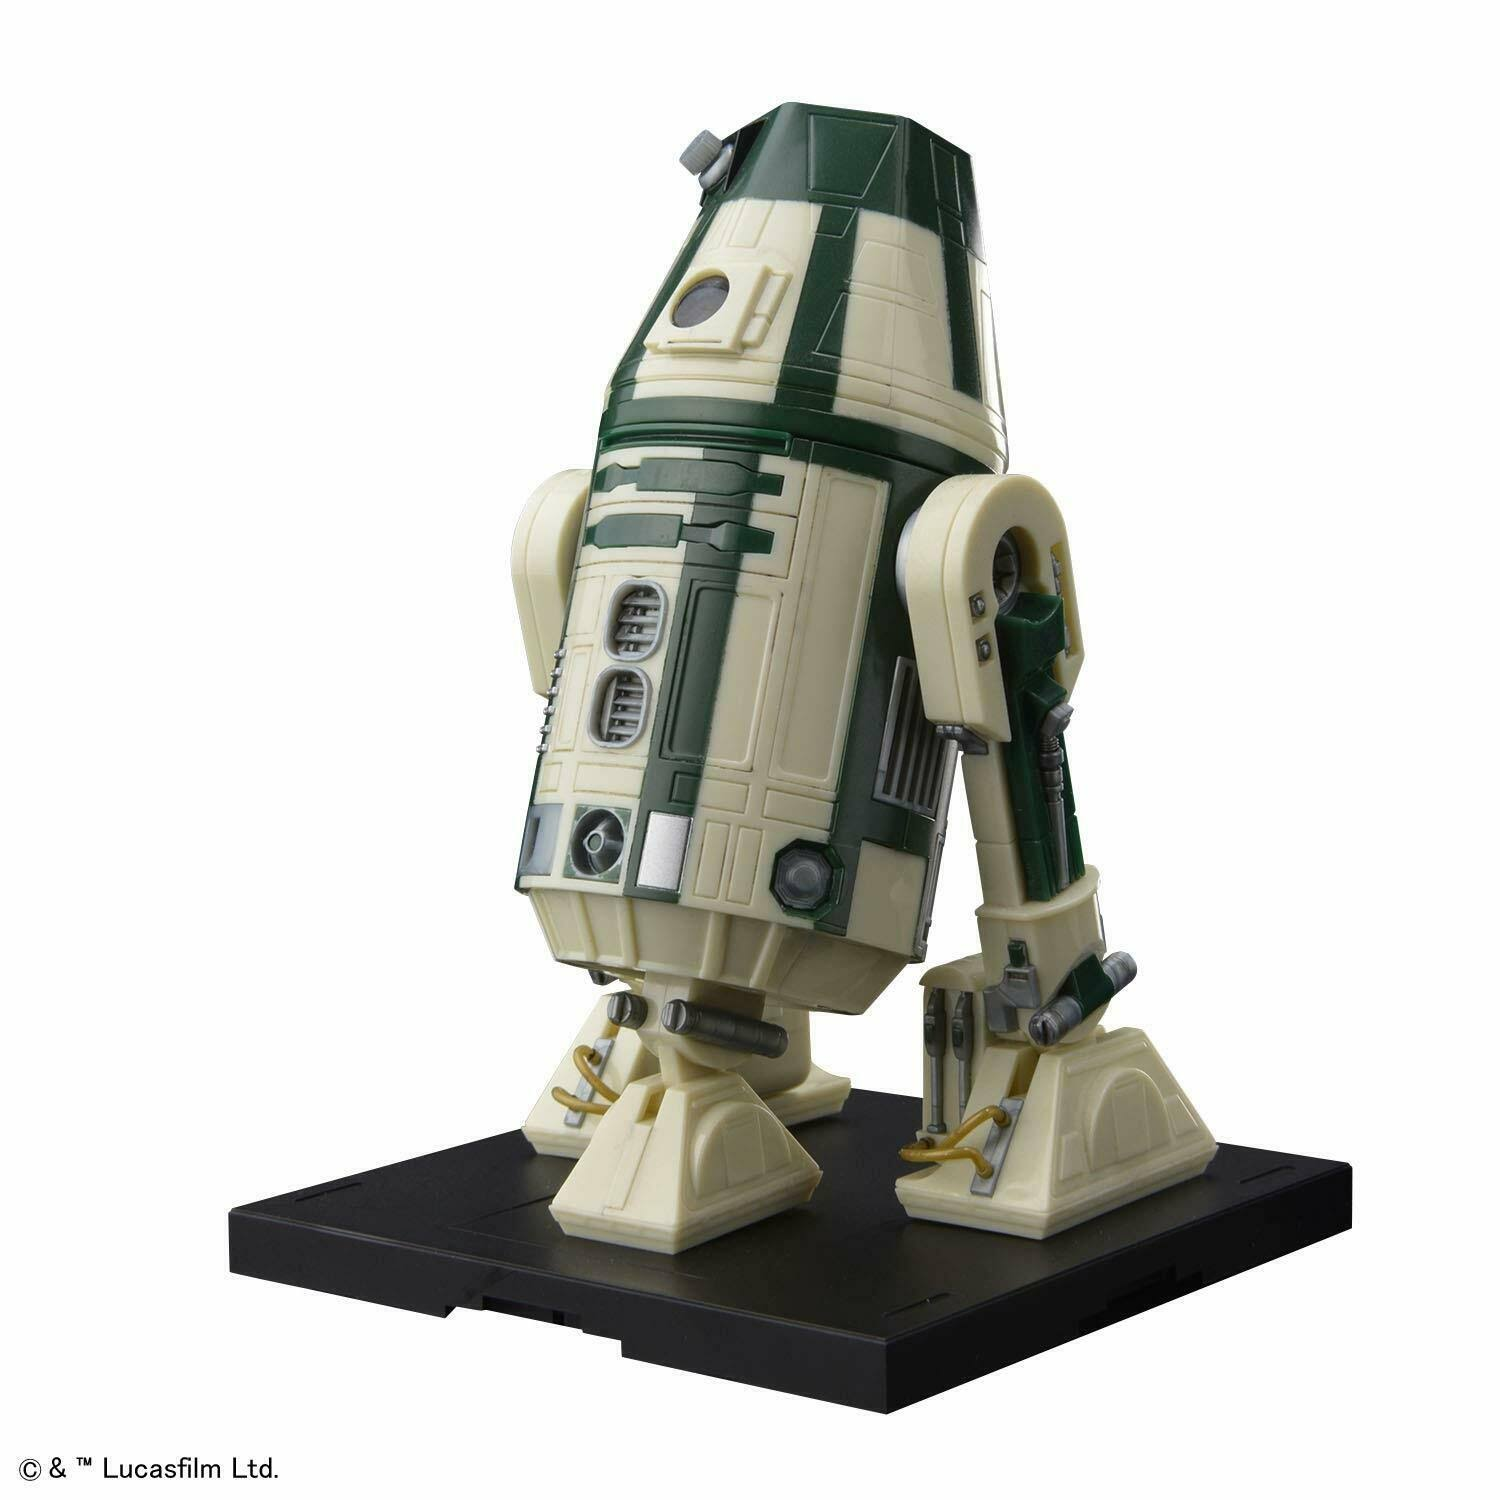 Star Wars R4 M9 Character Line 1 12 Scale Plastic Model Kit